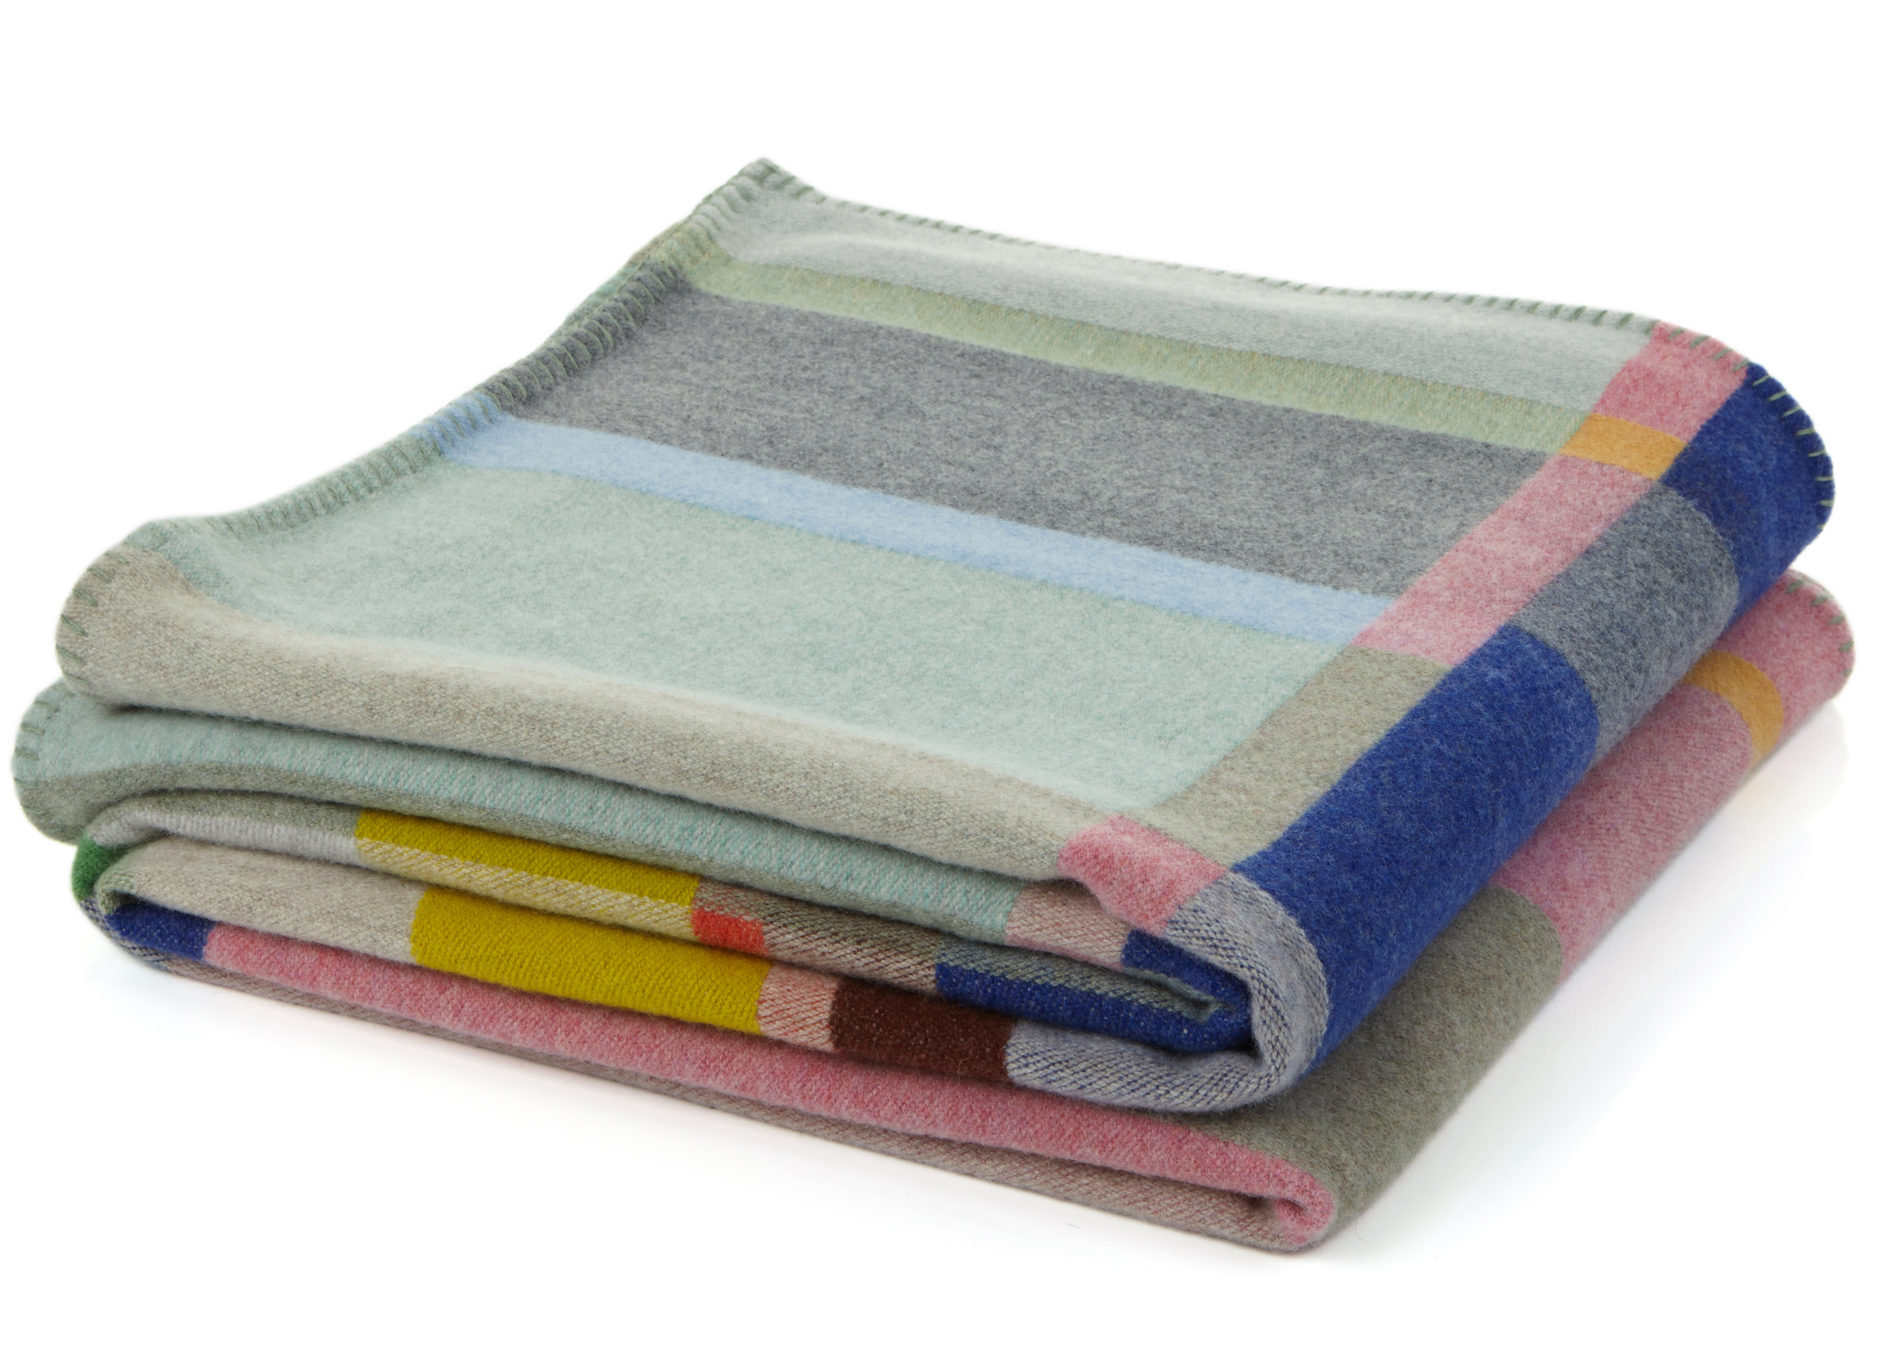 'Lloyd' lambswool throw by Wallace + Sewell, £285.